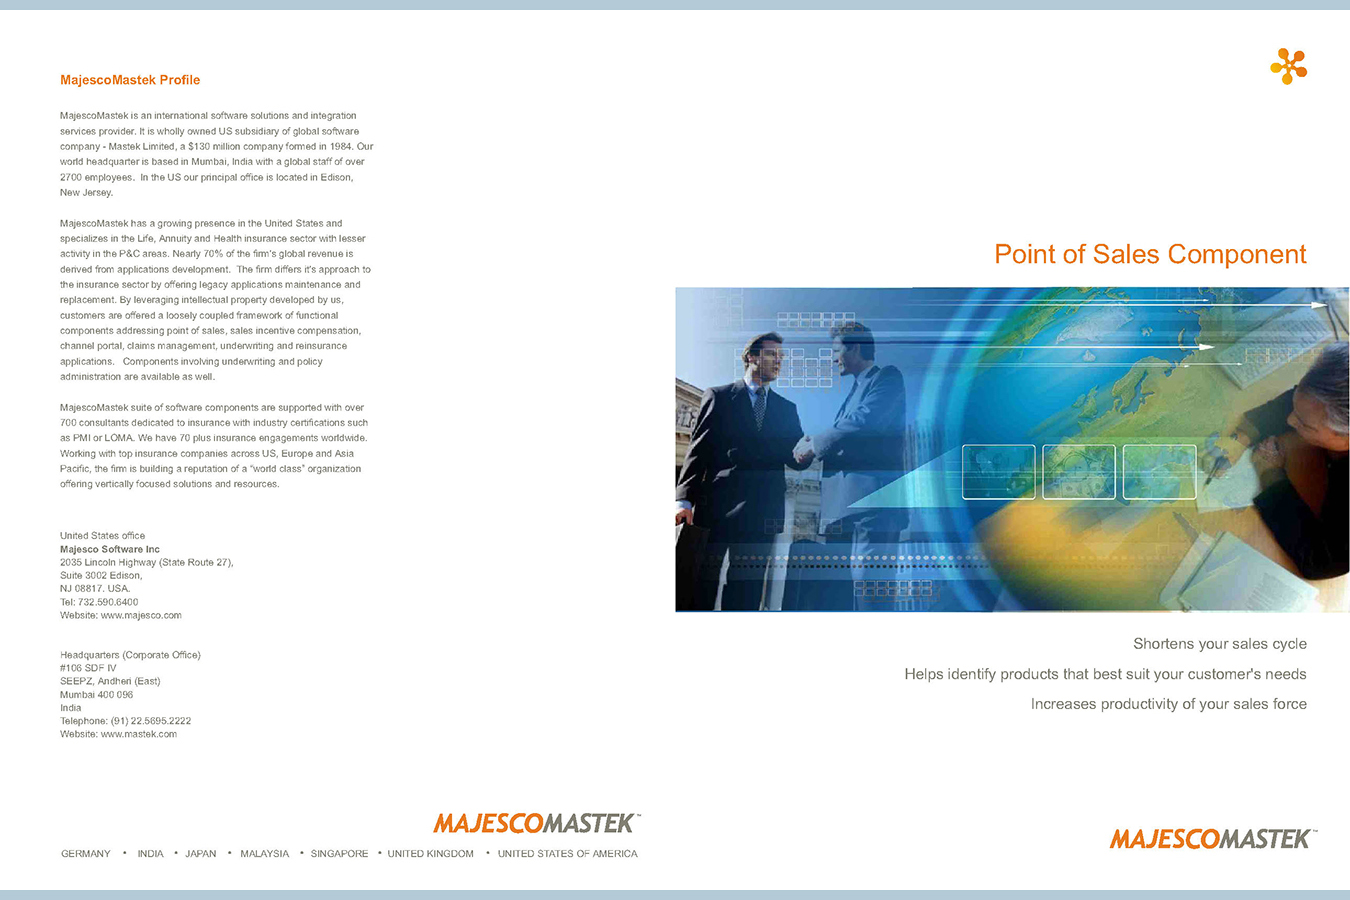 Mastek 1 : Majesco Mastek is an international software solutions provider